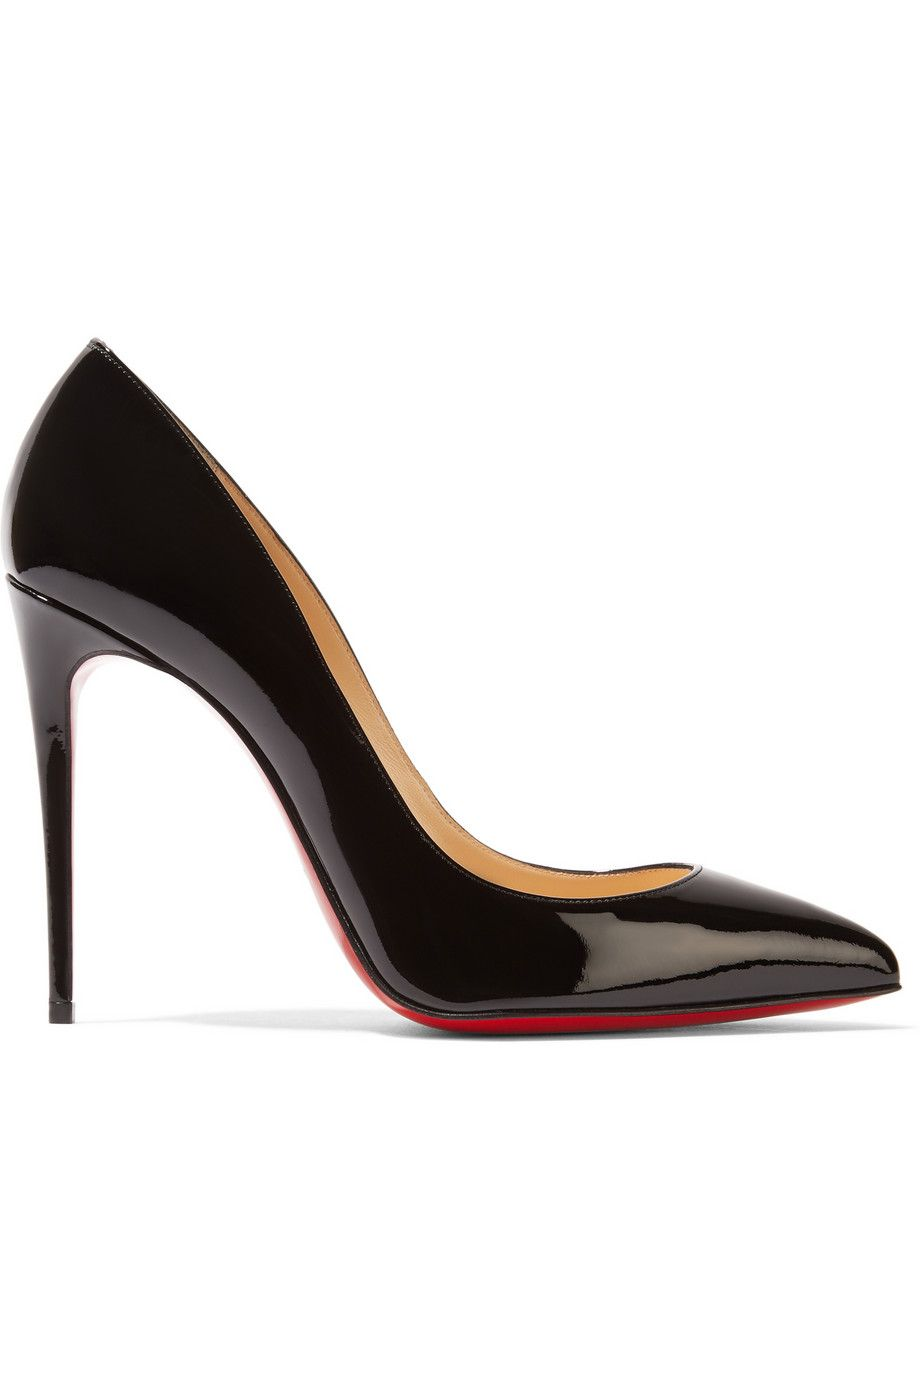 christian louboutin pigalle 100 studded pumps black